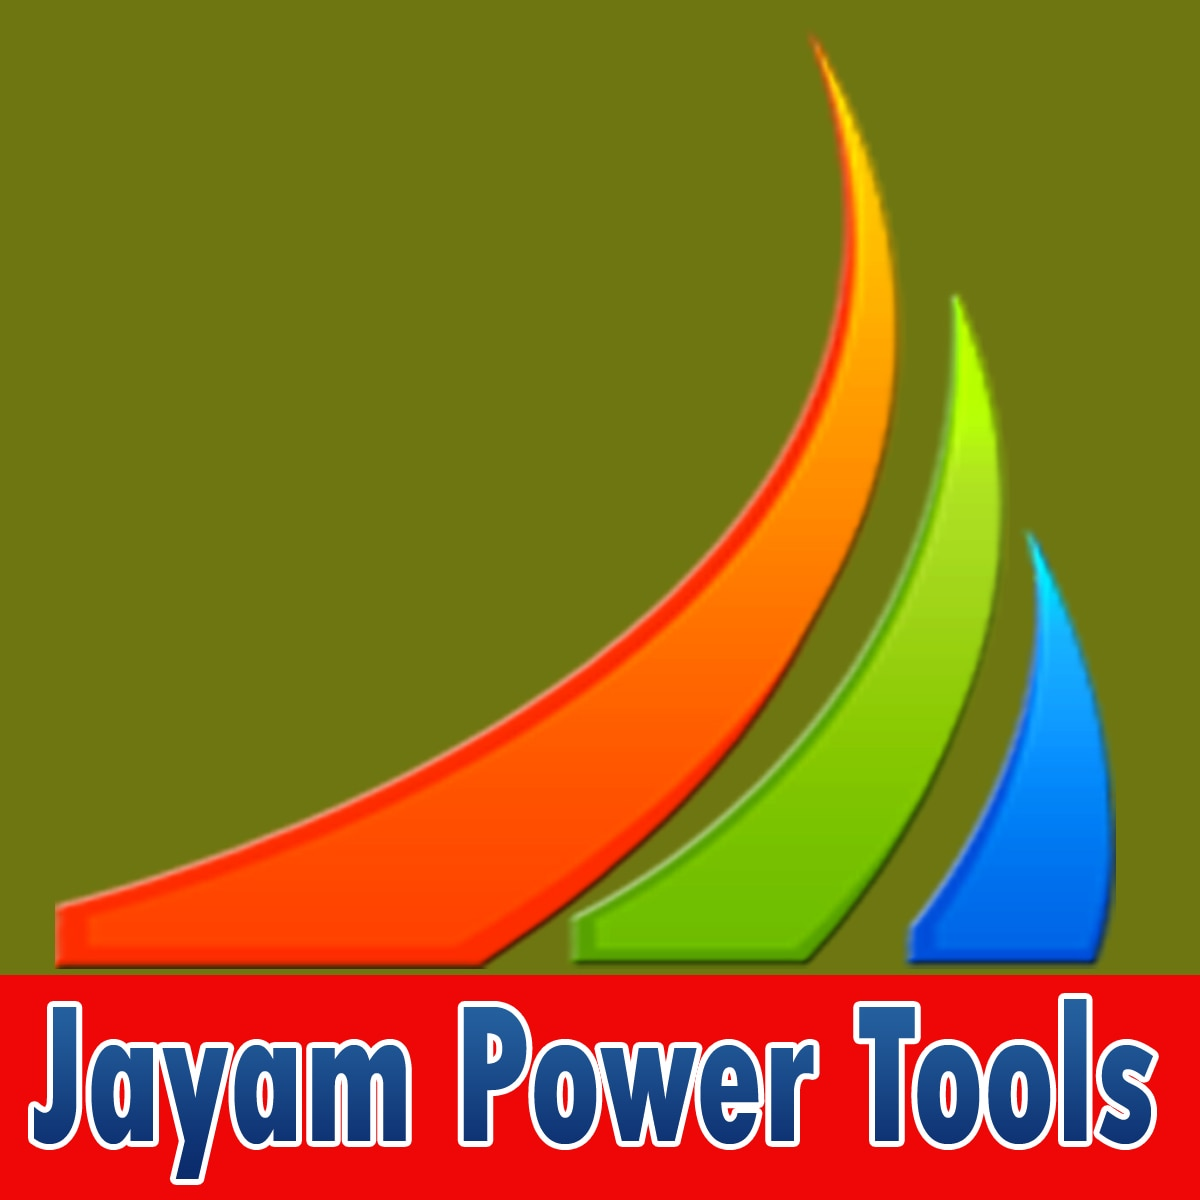 Jayam Power Tools